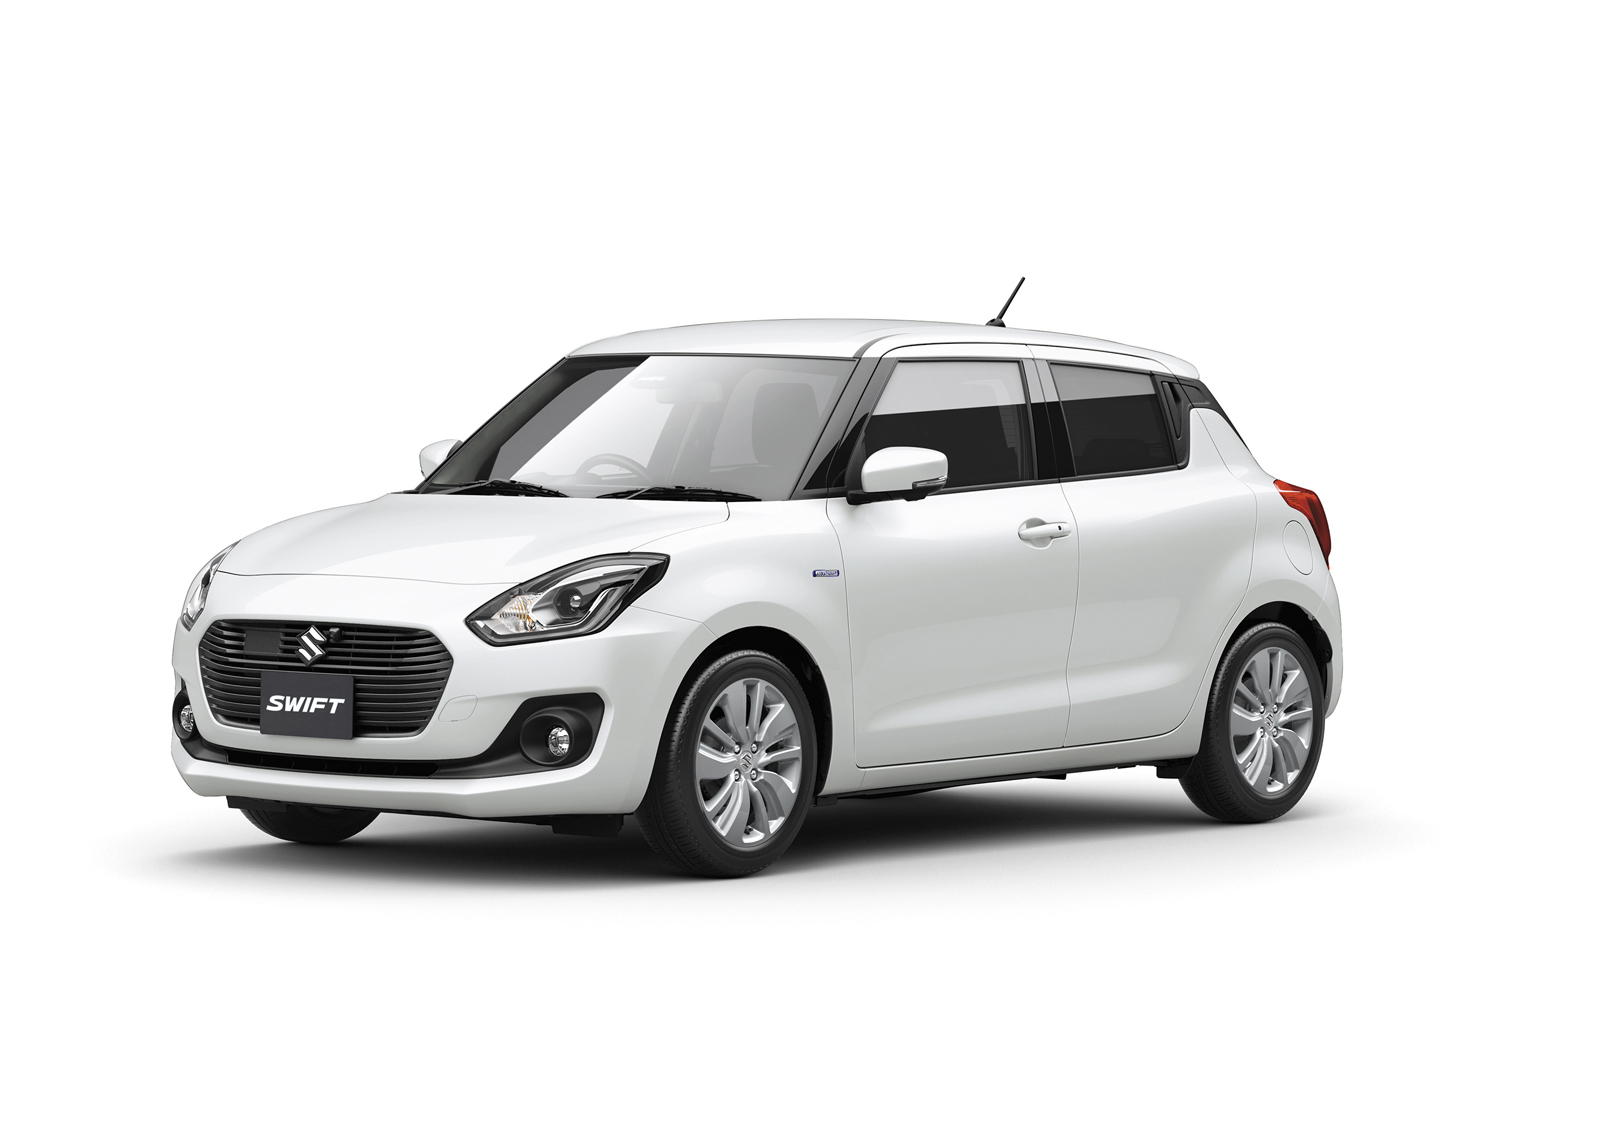 Suzuki Swift 2017 (4)